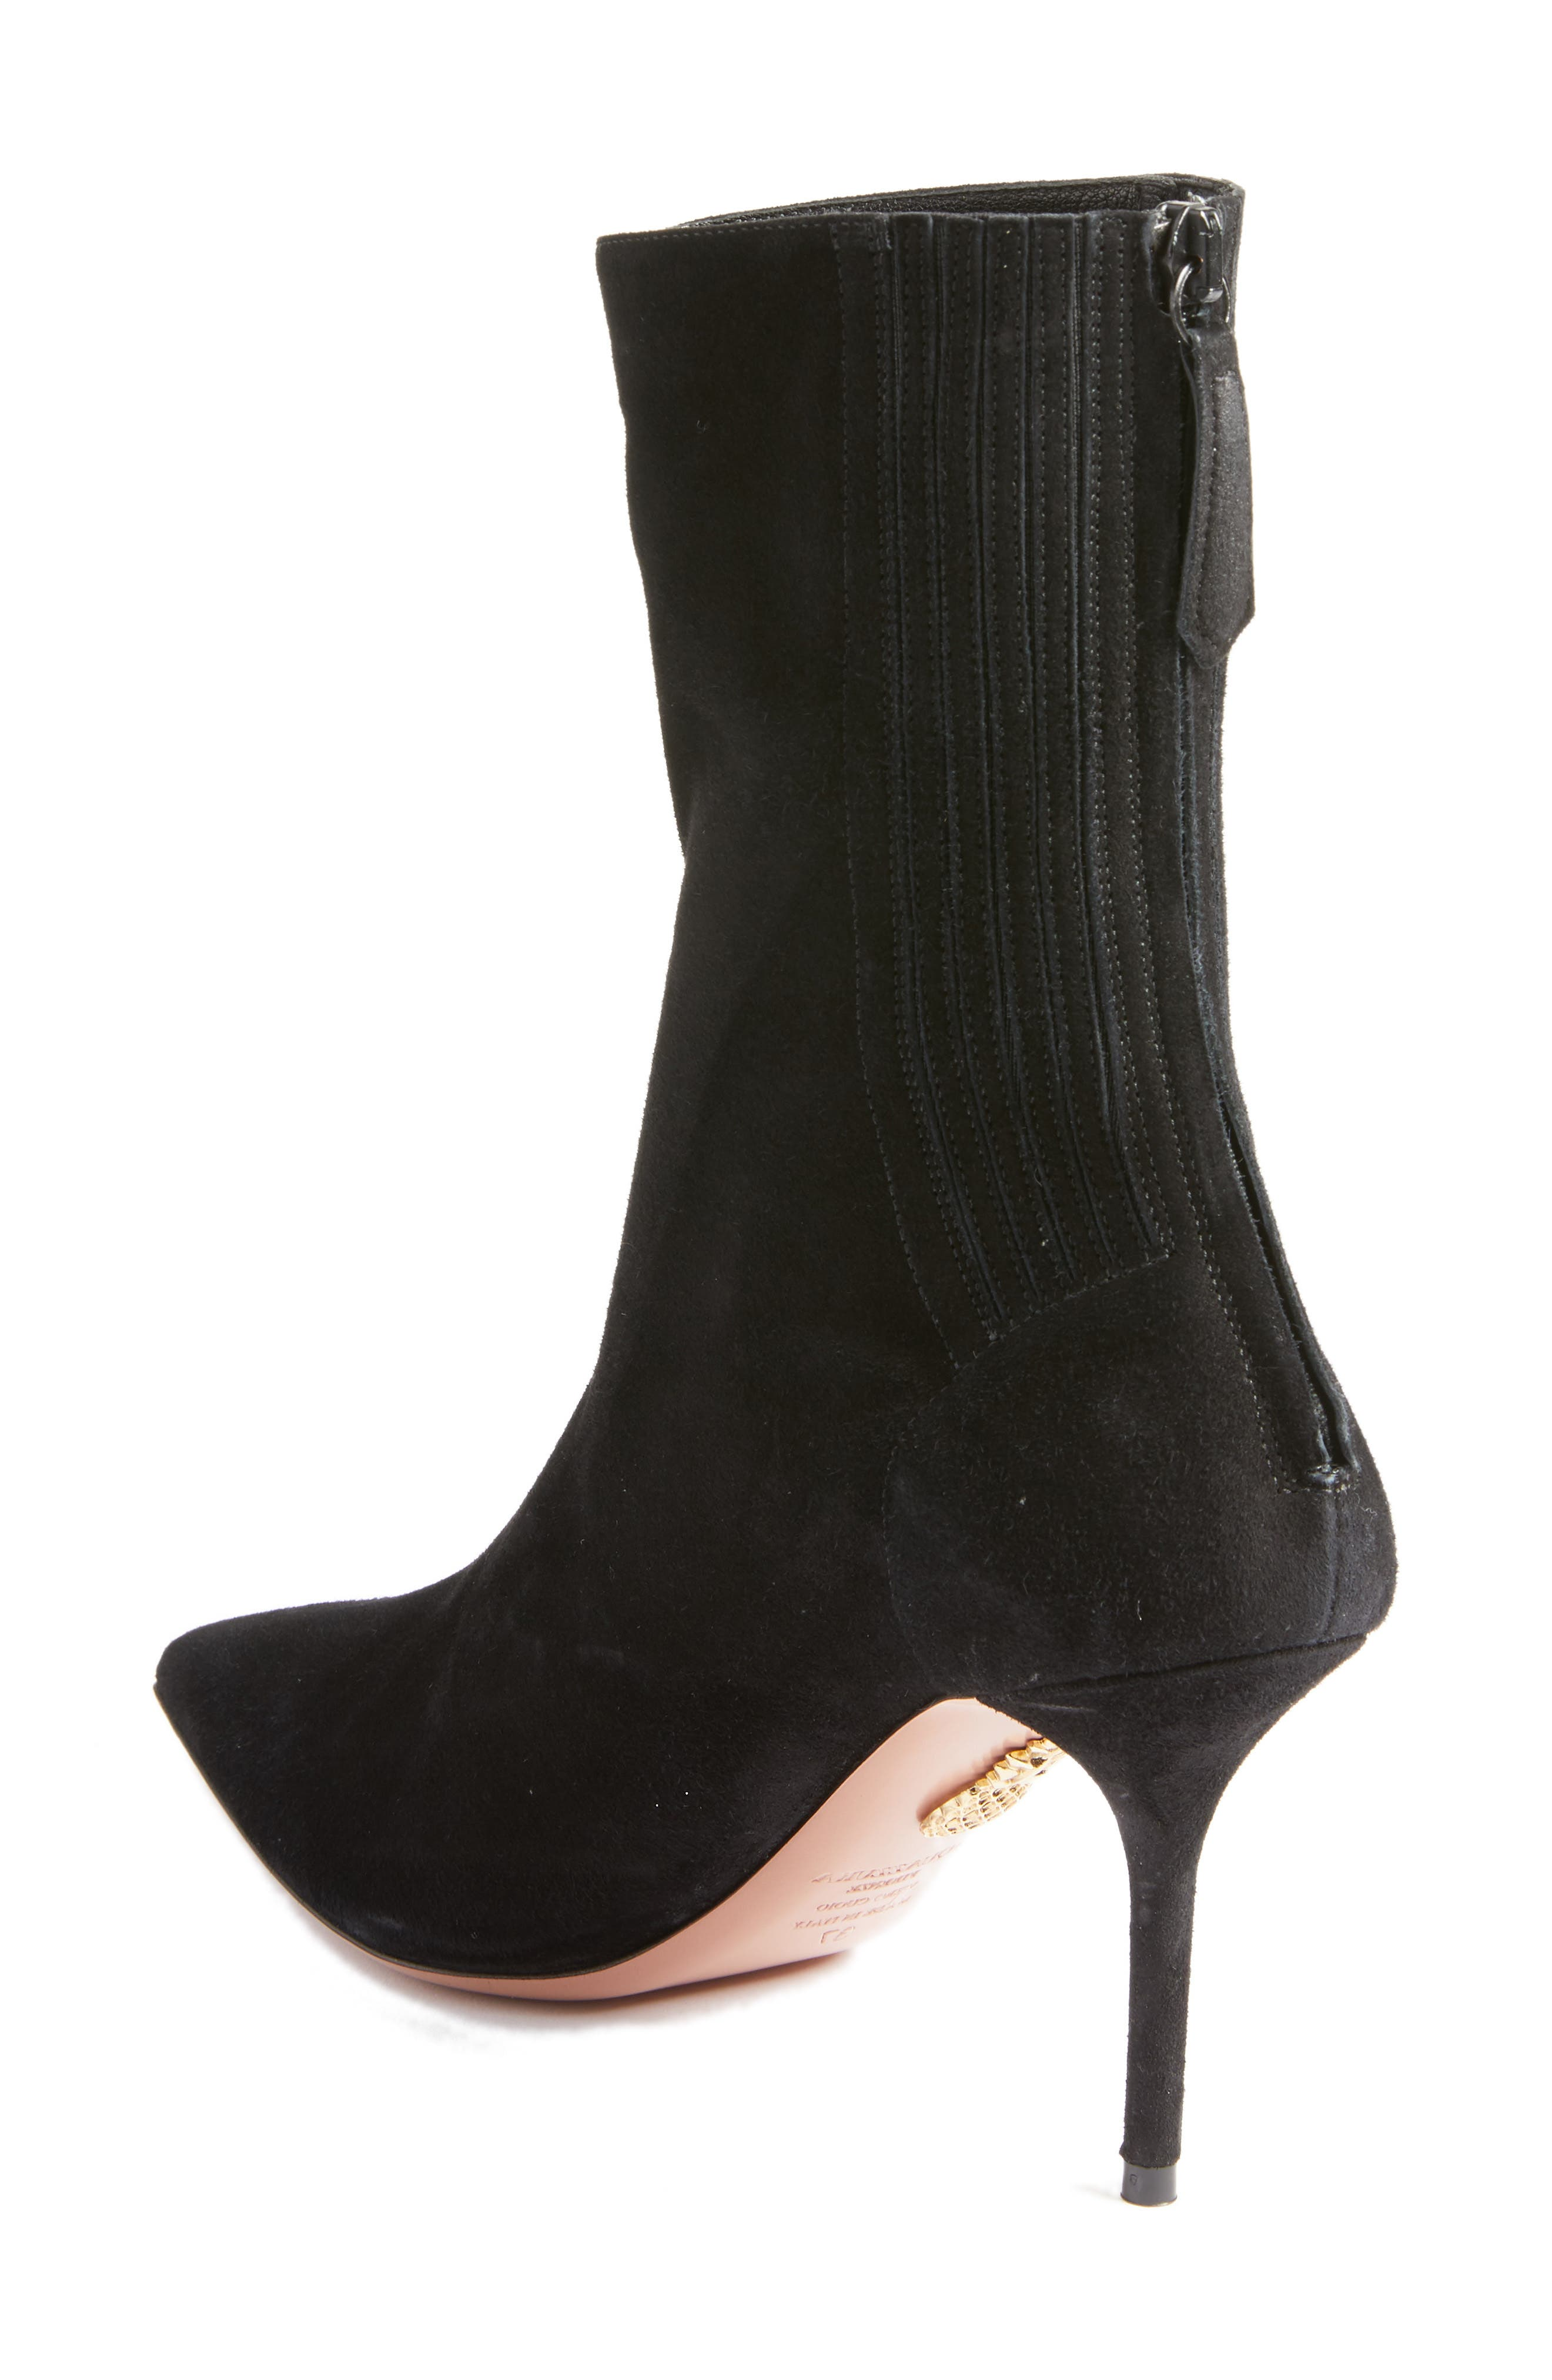 Saint Honore Pointy Toe Bootie,                             Alternate thumbnail 2, color,                             001